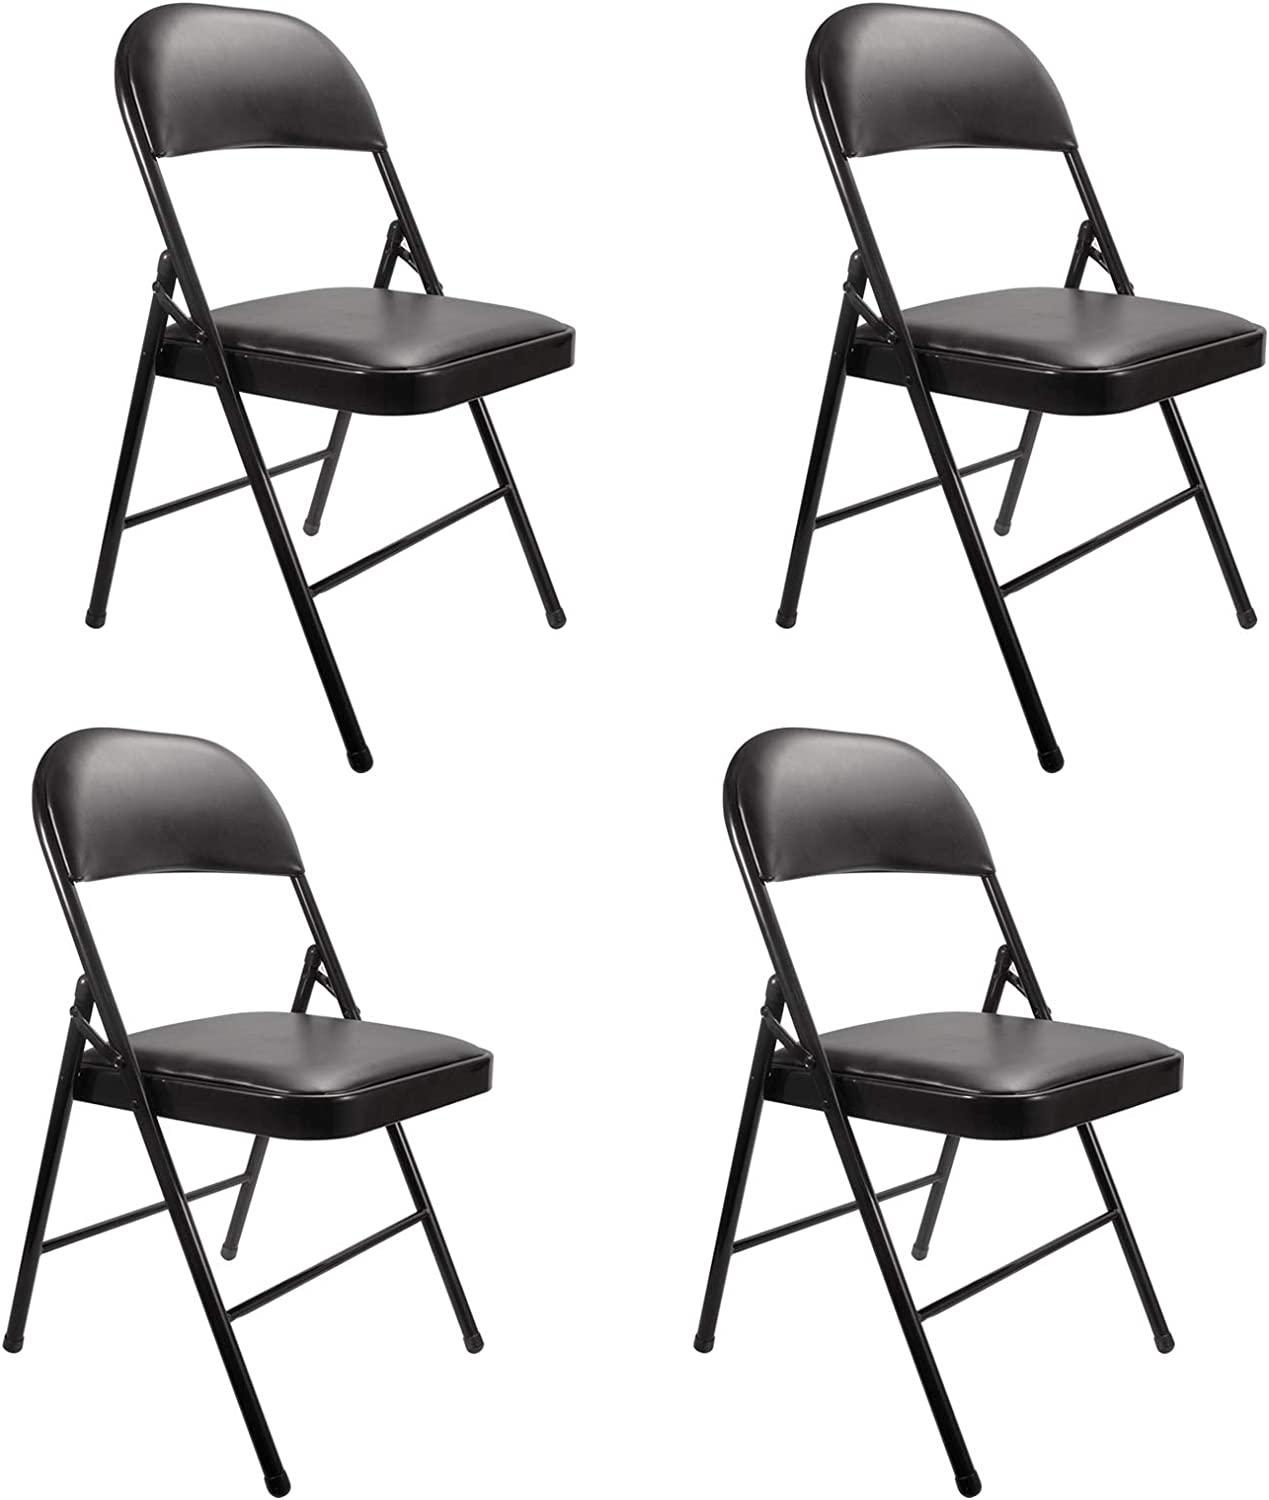 Black Philadelphia Mall Free Shipping Cheap Bargain Gift Folding Chairs 4 Pack with YJHome Metal Pad